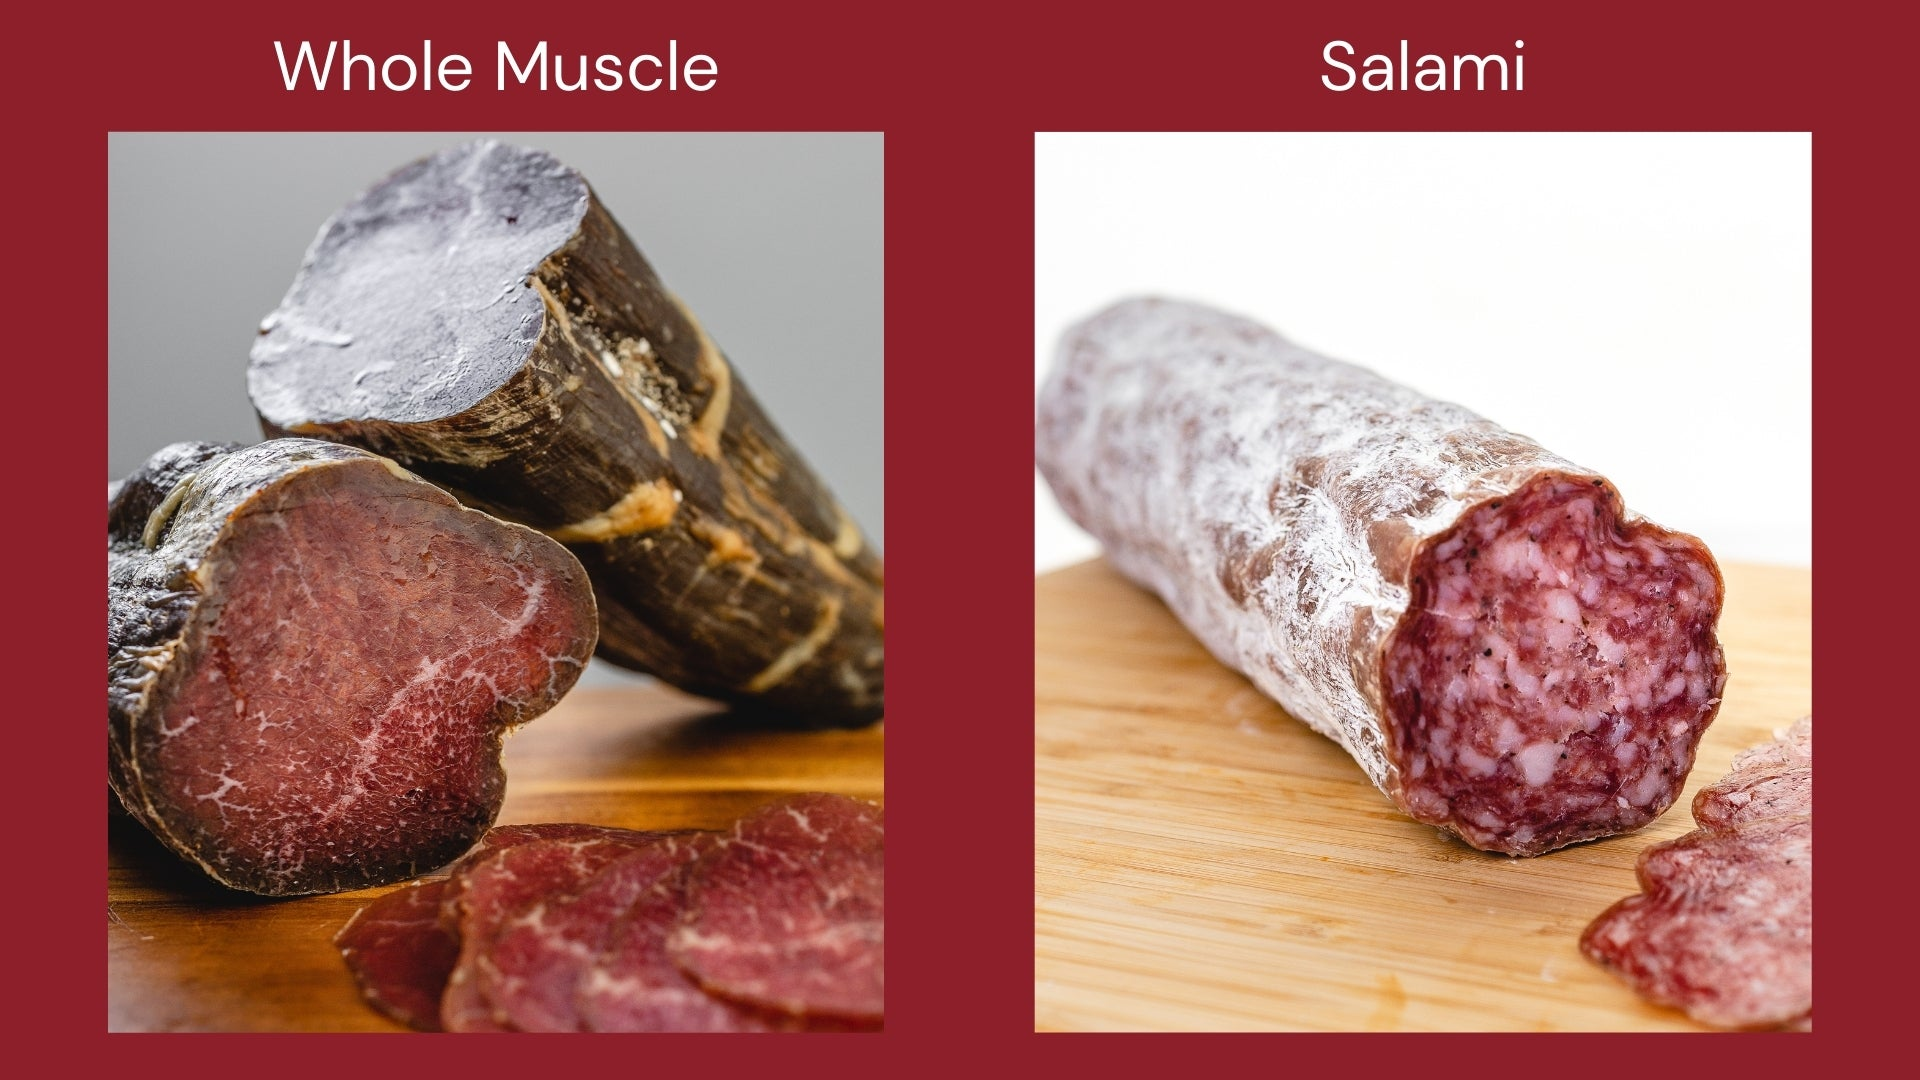 An image with pictures of whole muscle beef bresaola and a chub of salami to show the difference between the two cured meats.